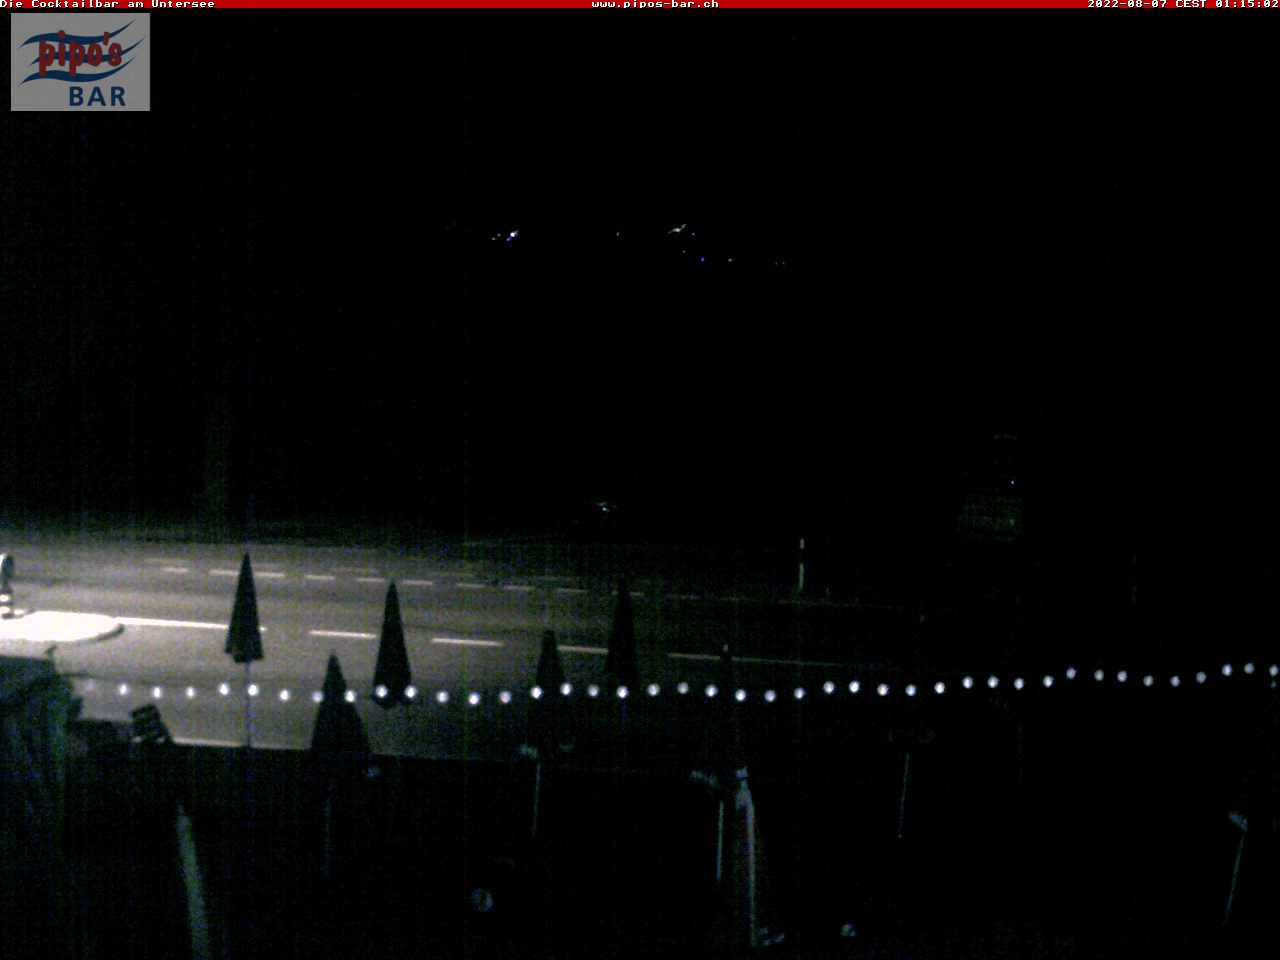 Panorama Webcam mit Blick NW von der Coctailbar am Untersee in Berlingen, West Point, pipo's Bar